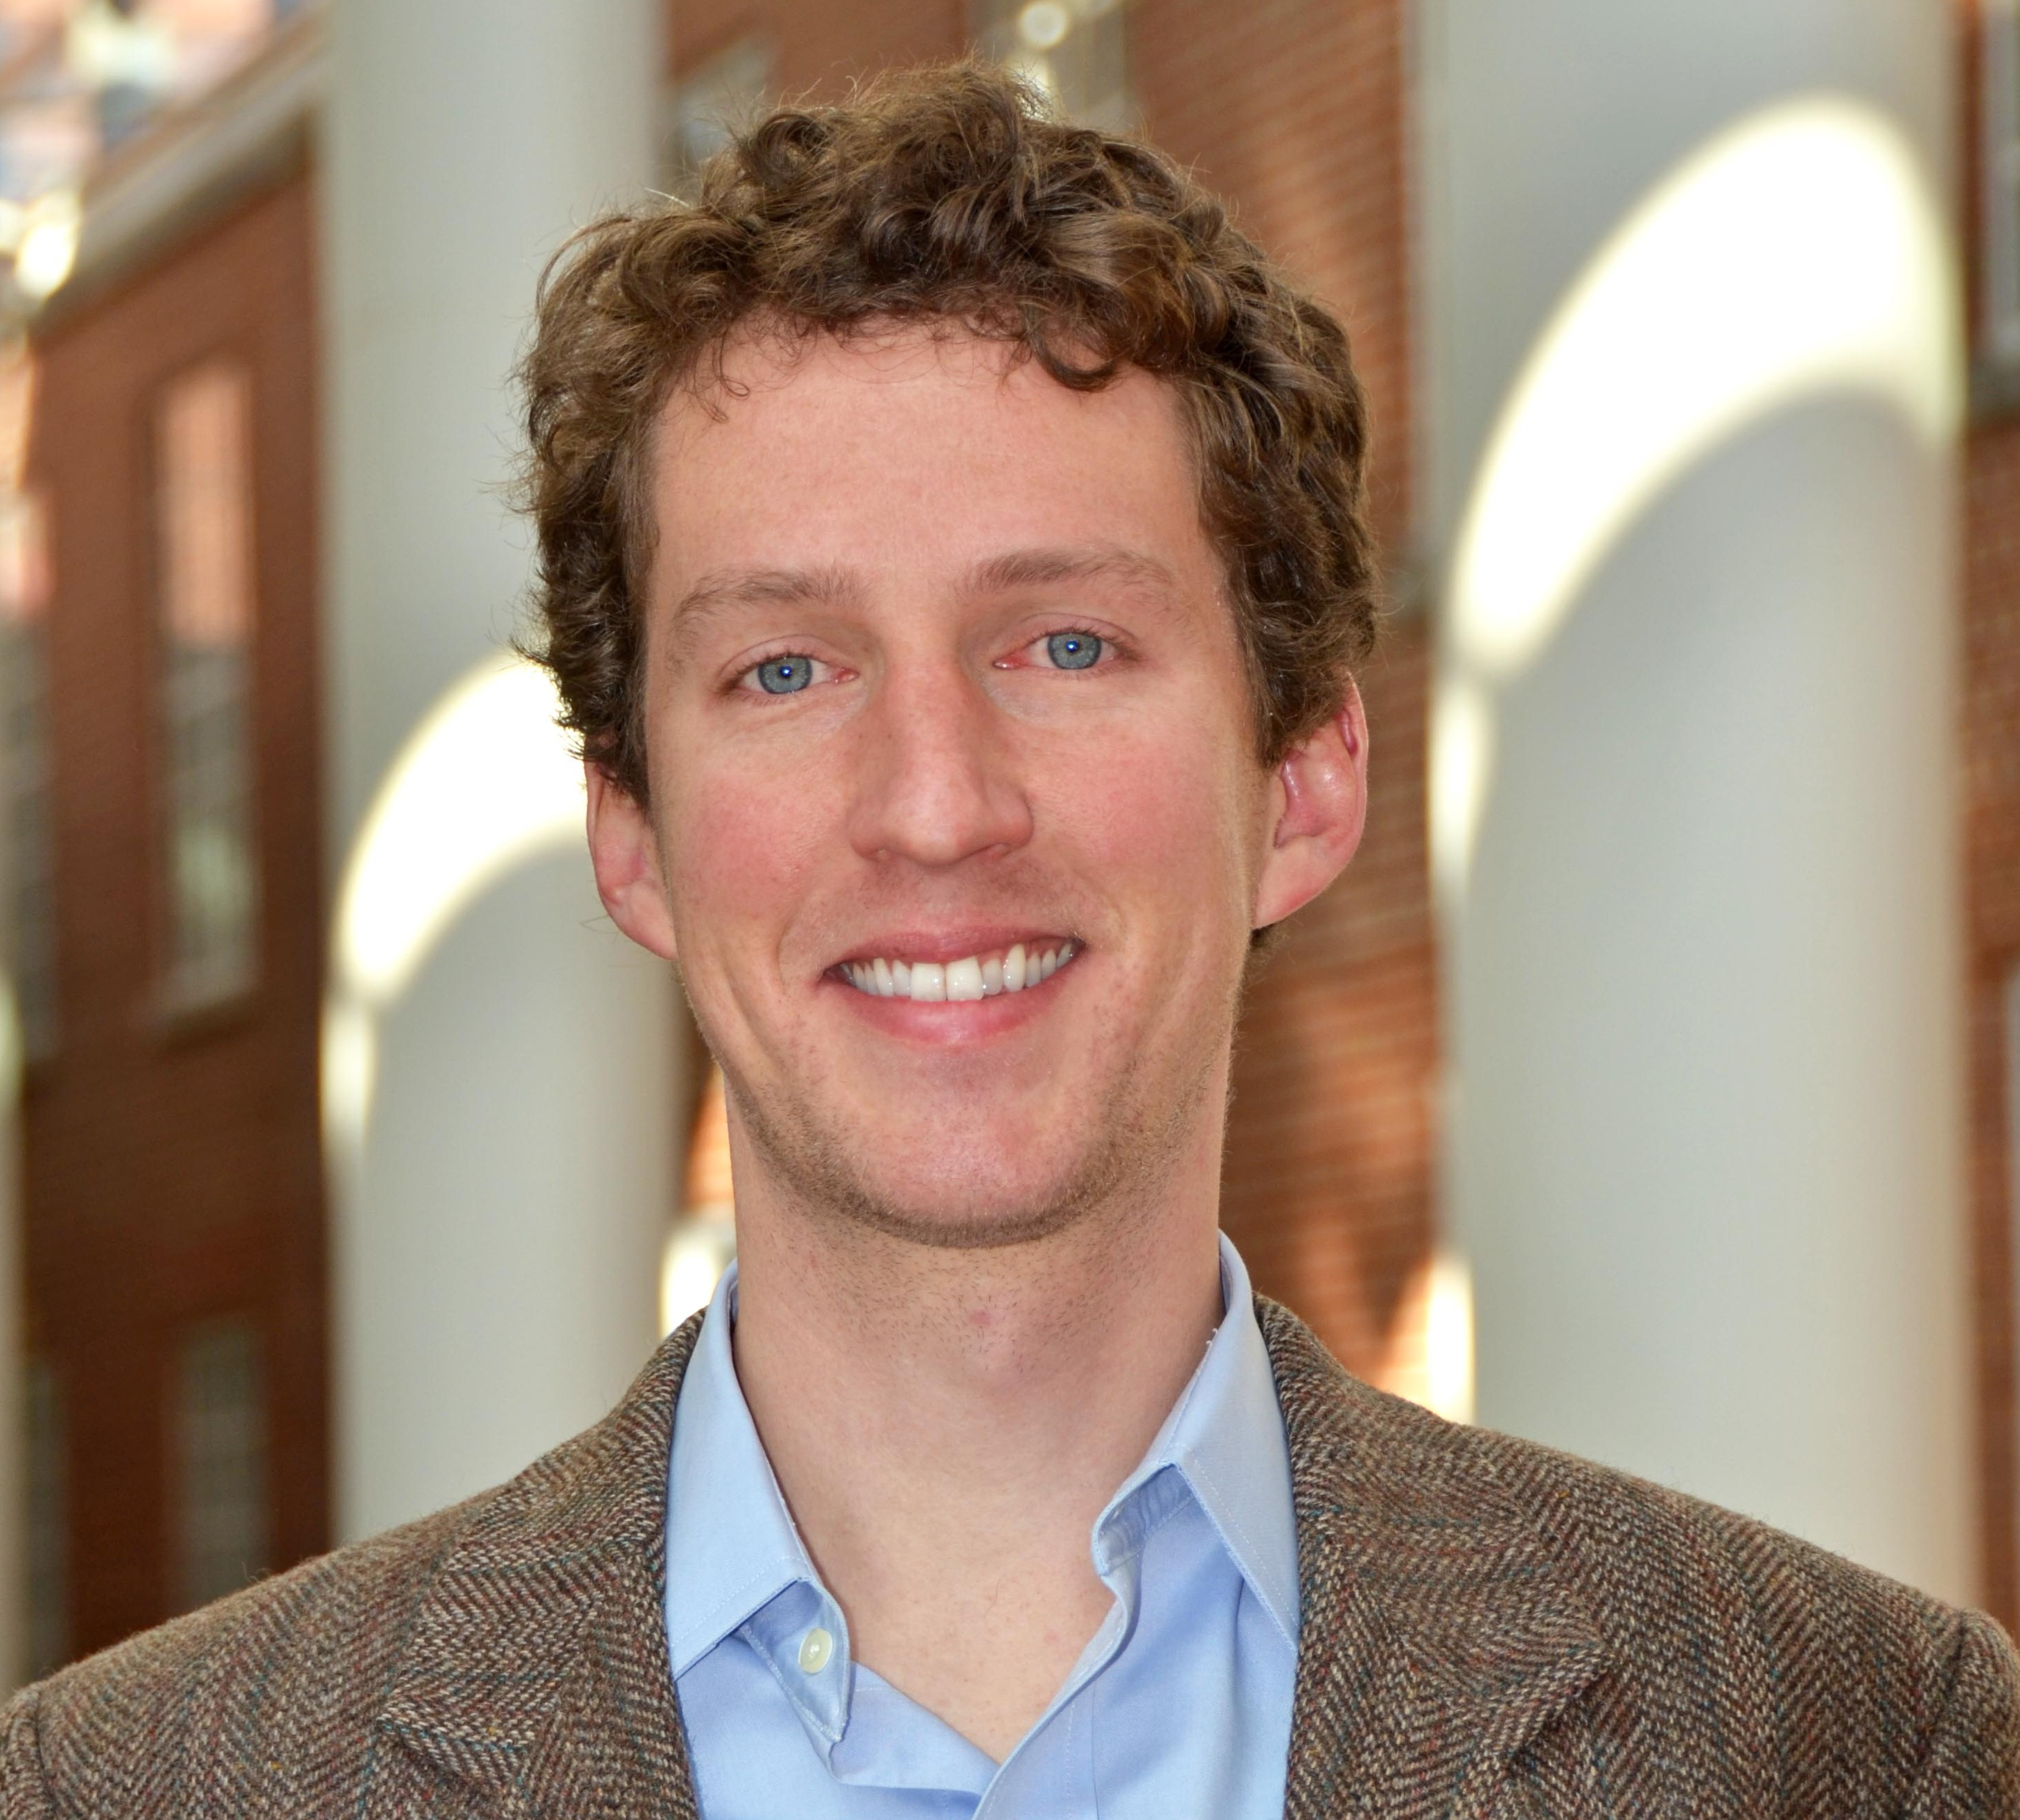 Alan Kinlaw, doctoral student